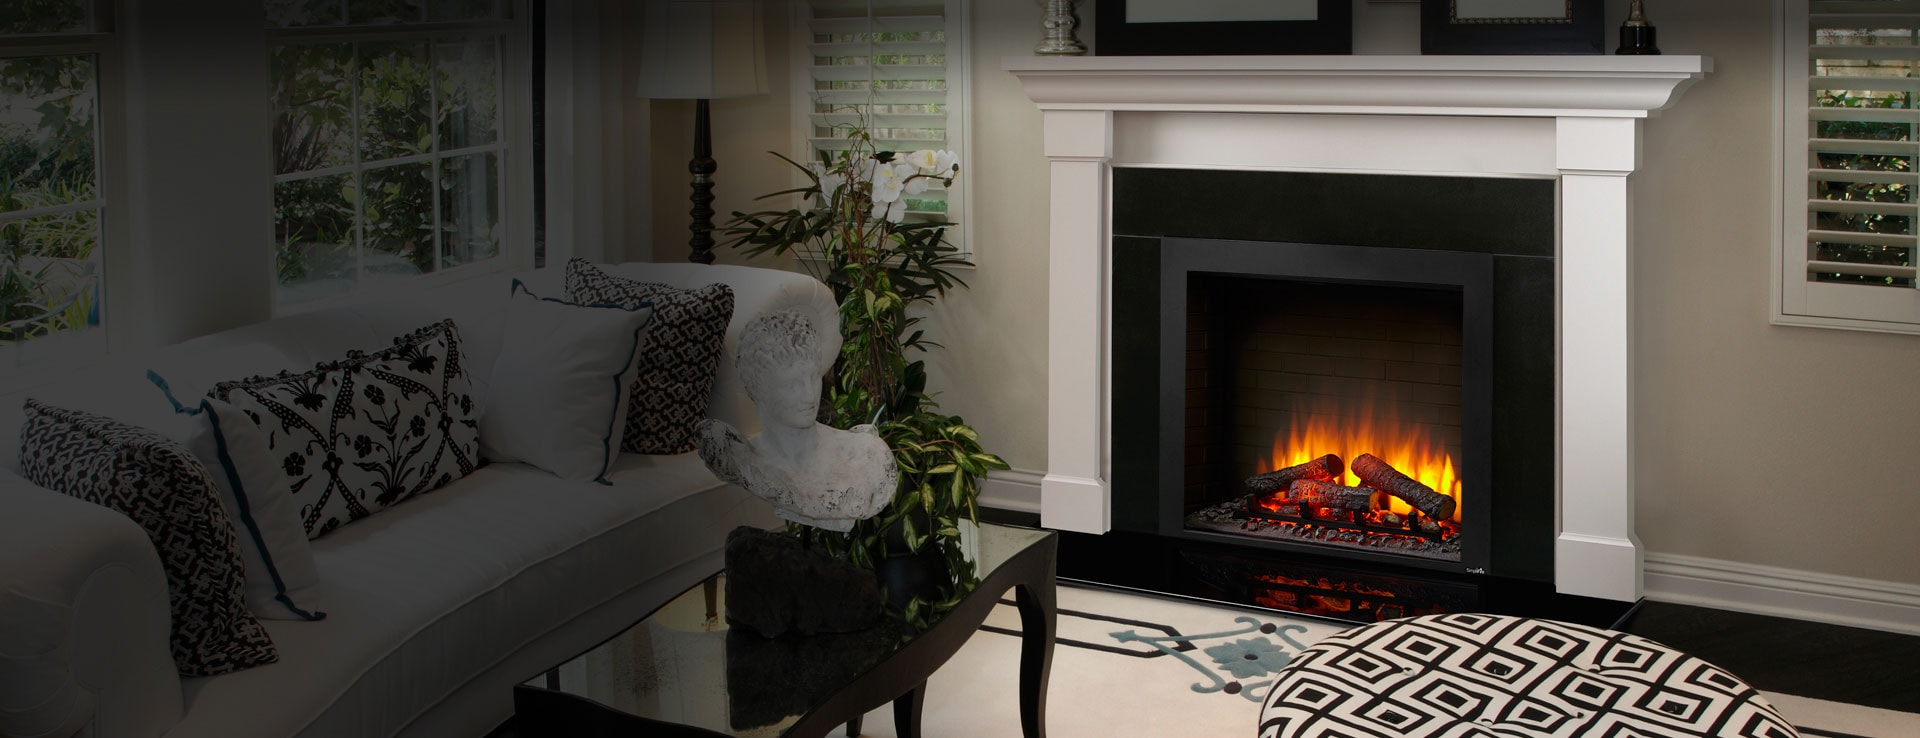 <p>SimpliFire Built-In Electric Fireplace</p>